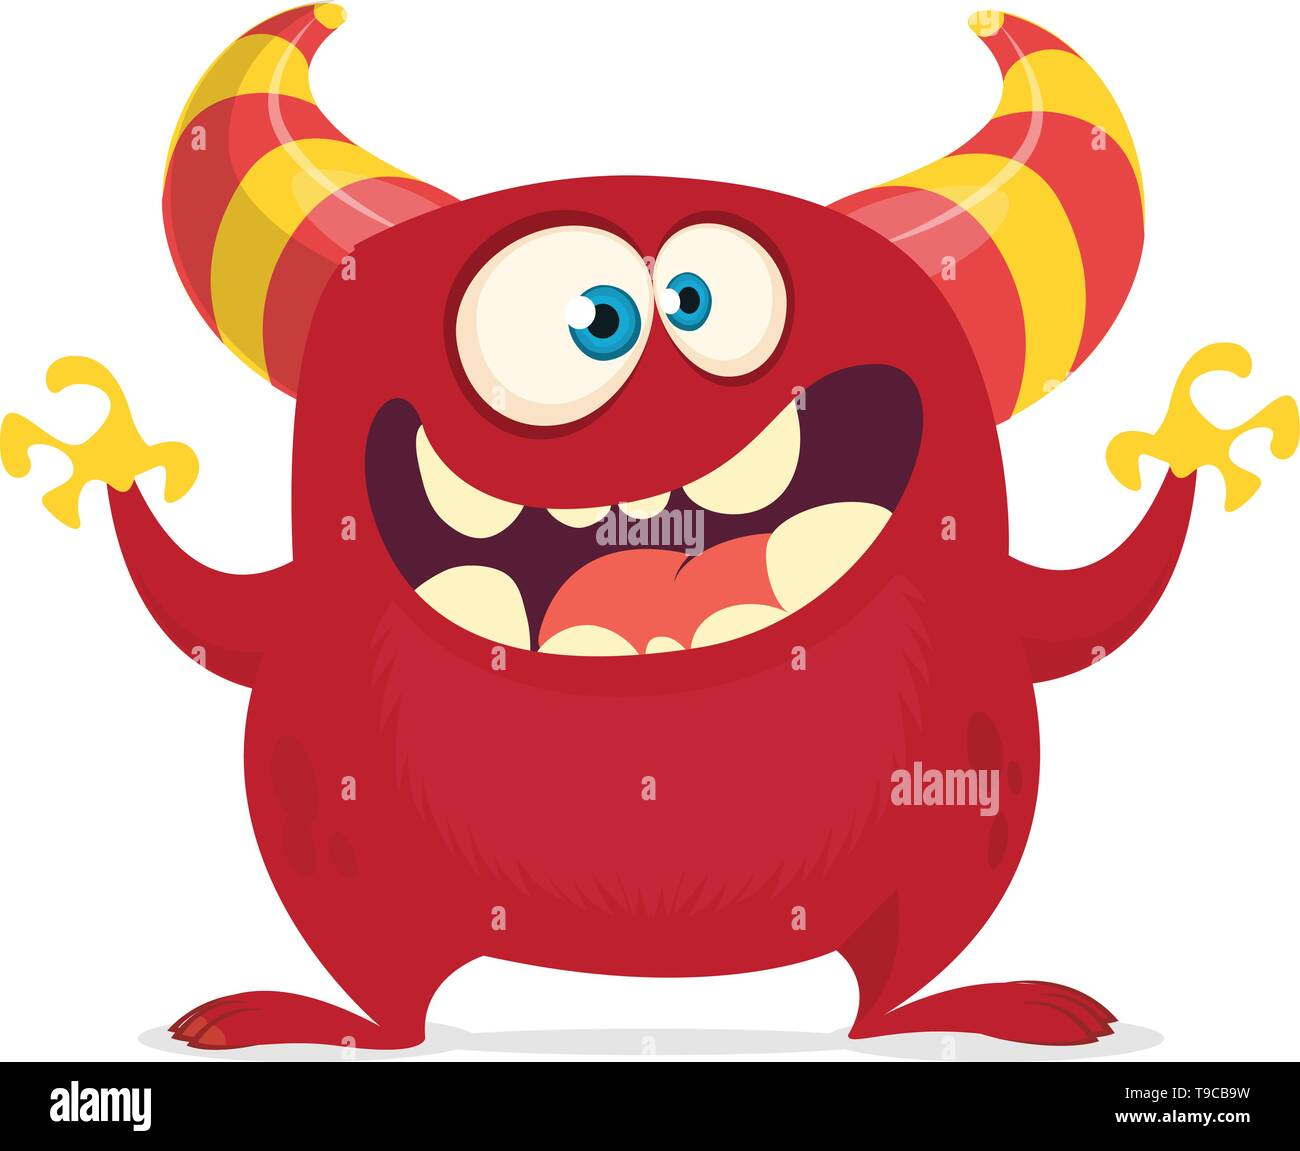 Cool cartoon monster with horns and big mouth. Vector red monster illustration. Halloween character design - Stock Image